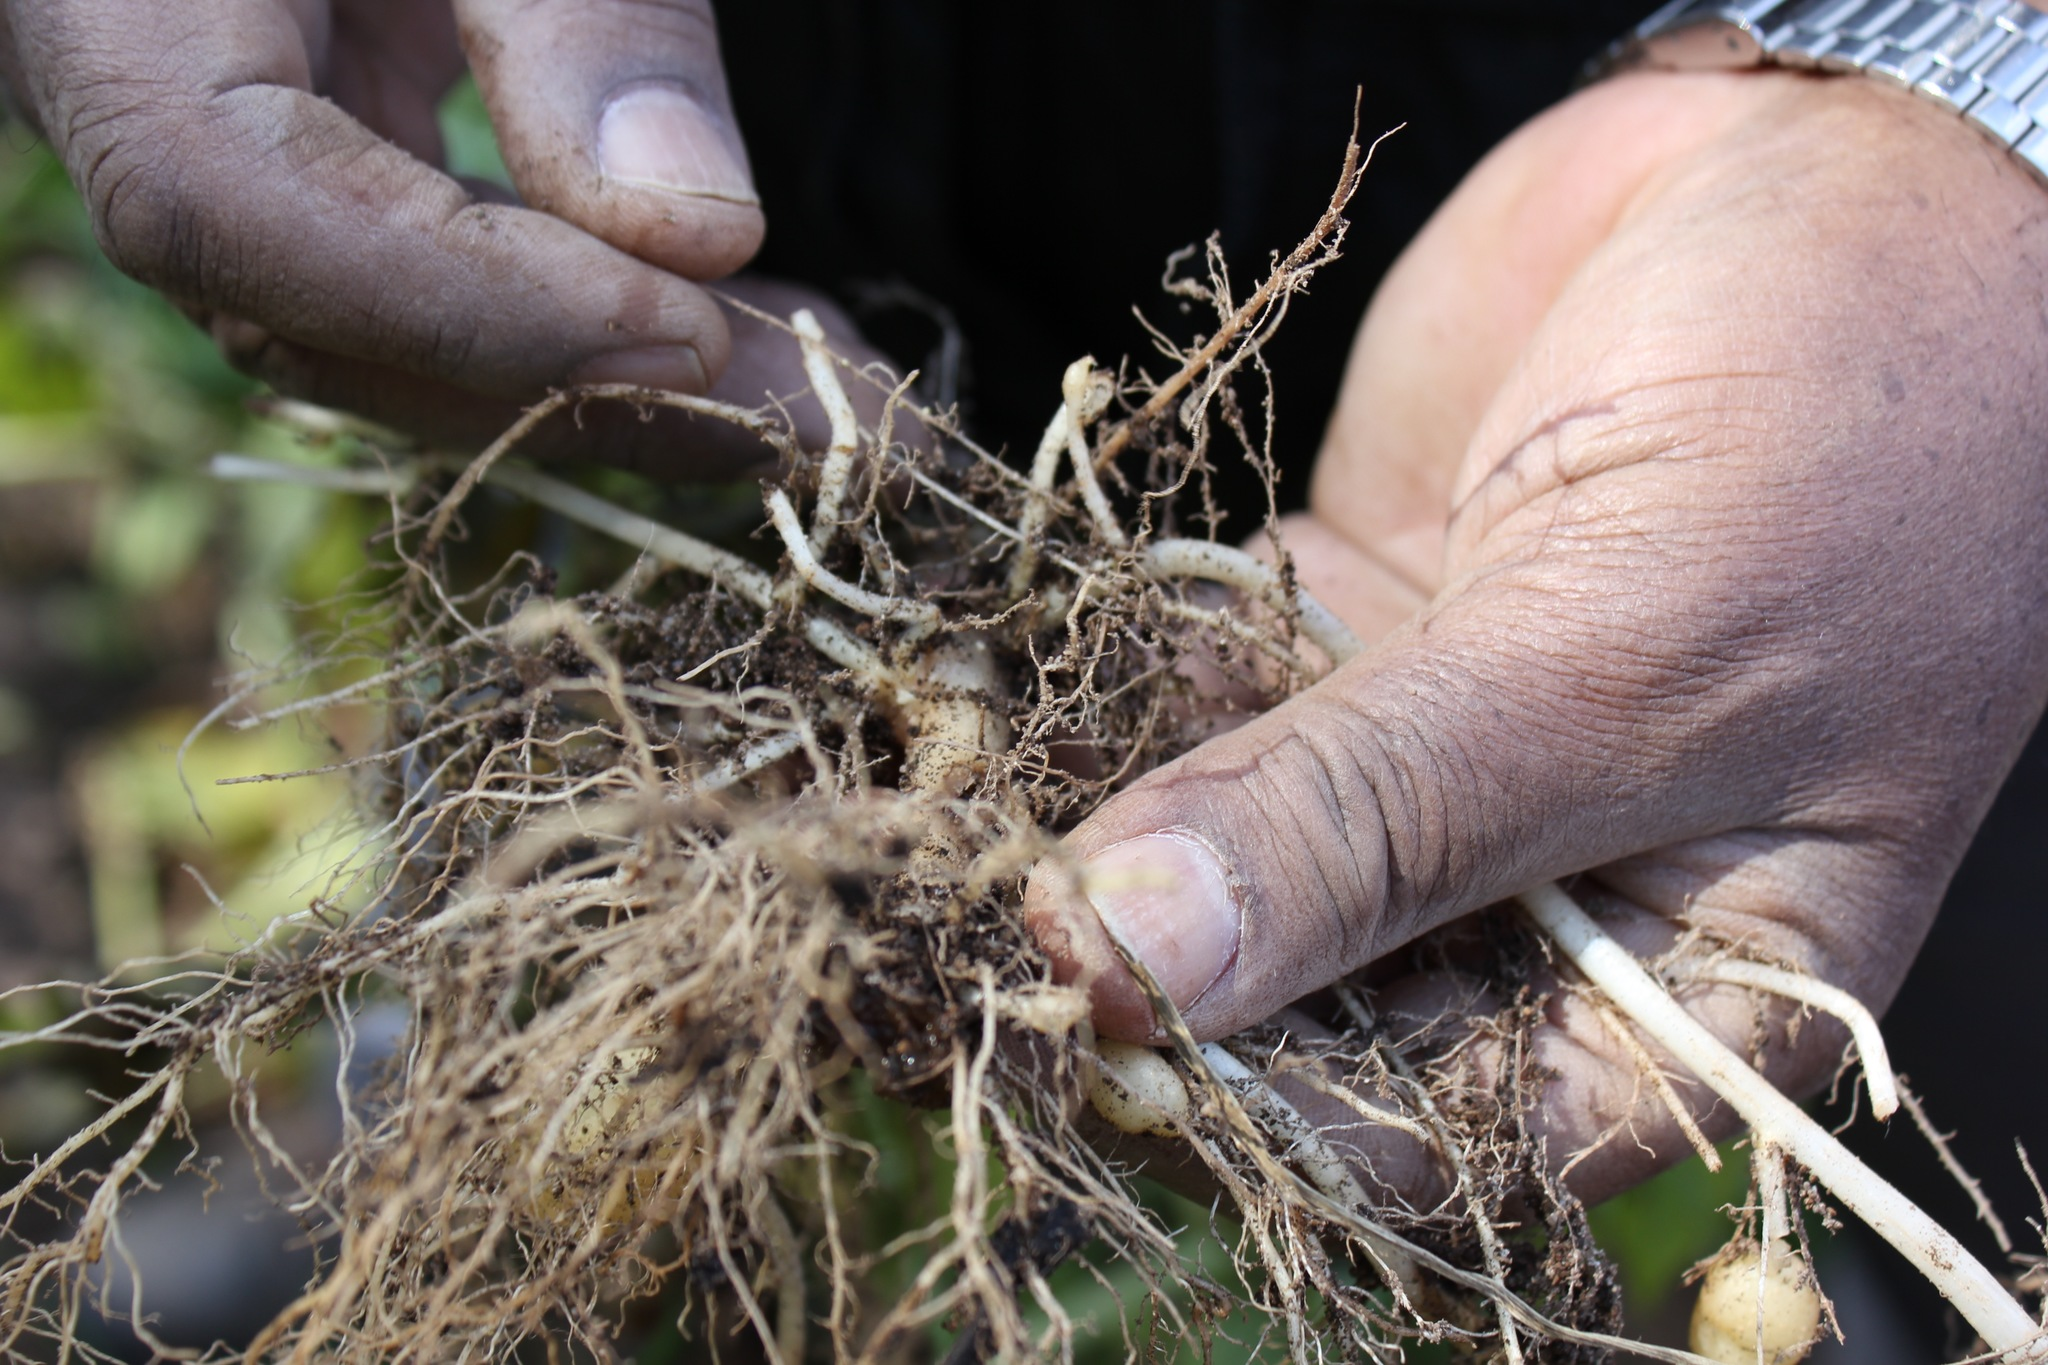 Close-up on hands holding potato roots with cyst nematode visible, from a field in Guatemala